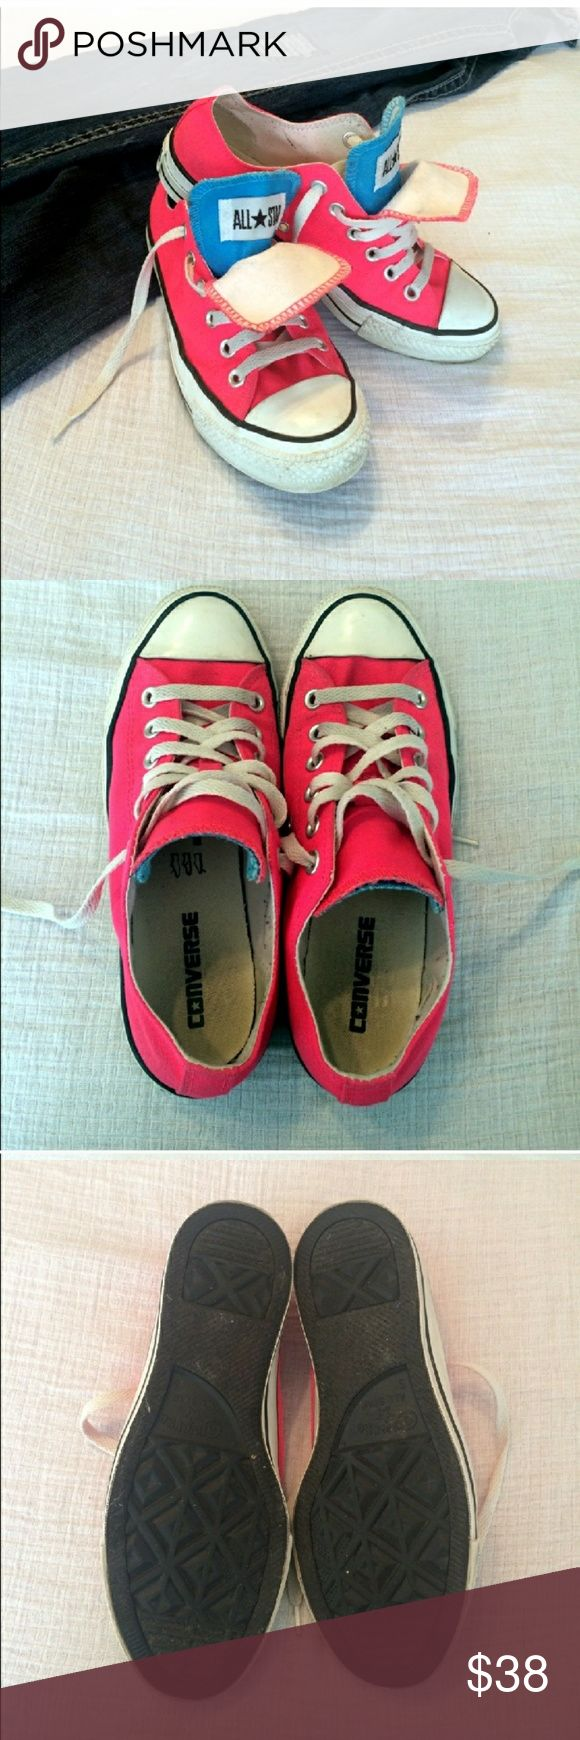 Converse Neon Pink & Blue Low top sneakers ??Look at these bright neon colors ??These are in great condition! They have only been worn a handful of times. They just need a little cleaning and they would look new! Bright pink shoes with turquoise tongues.   Size 7 in Women's and 5 in men's. Converse Shoes Sneakers